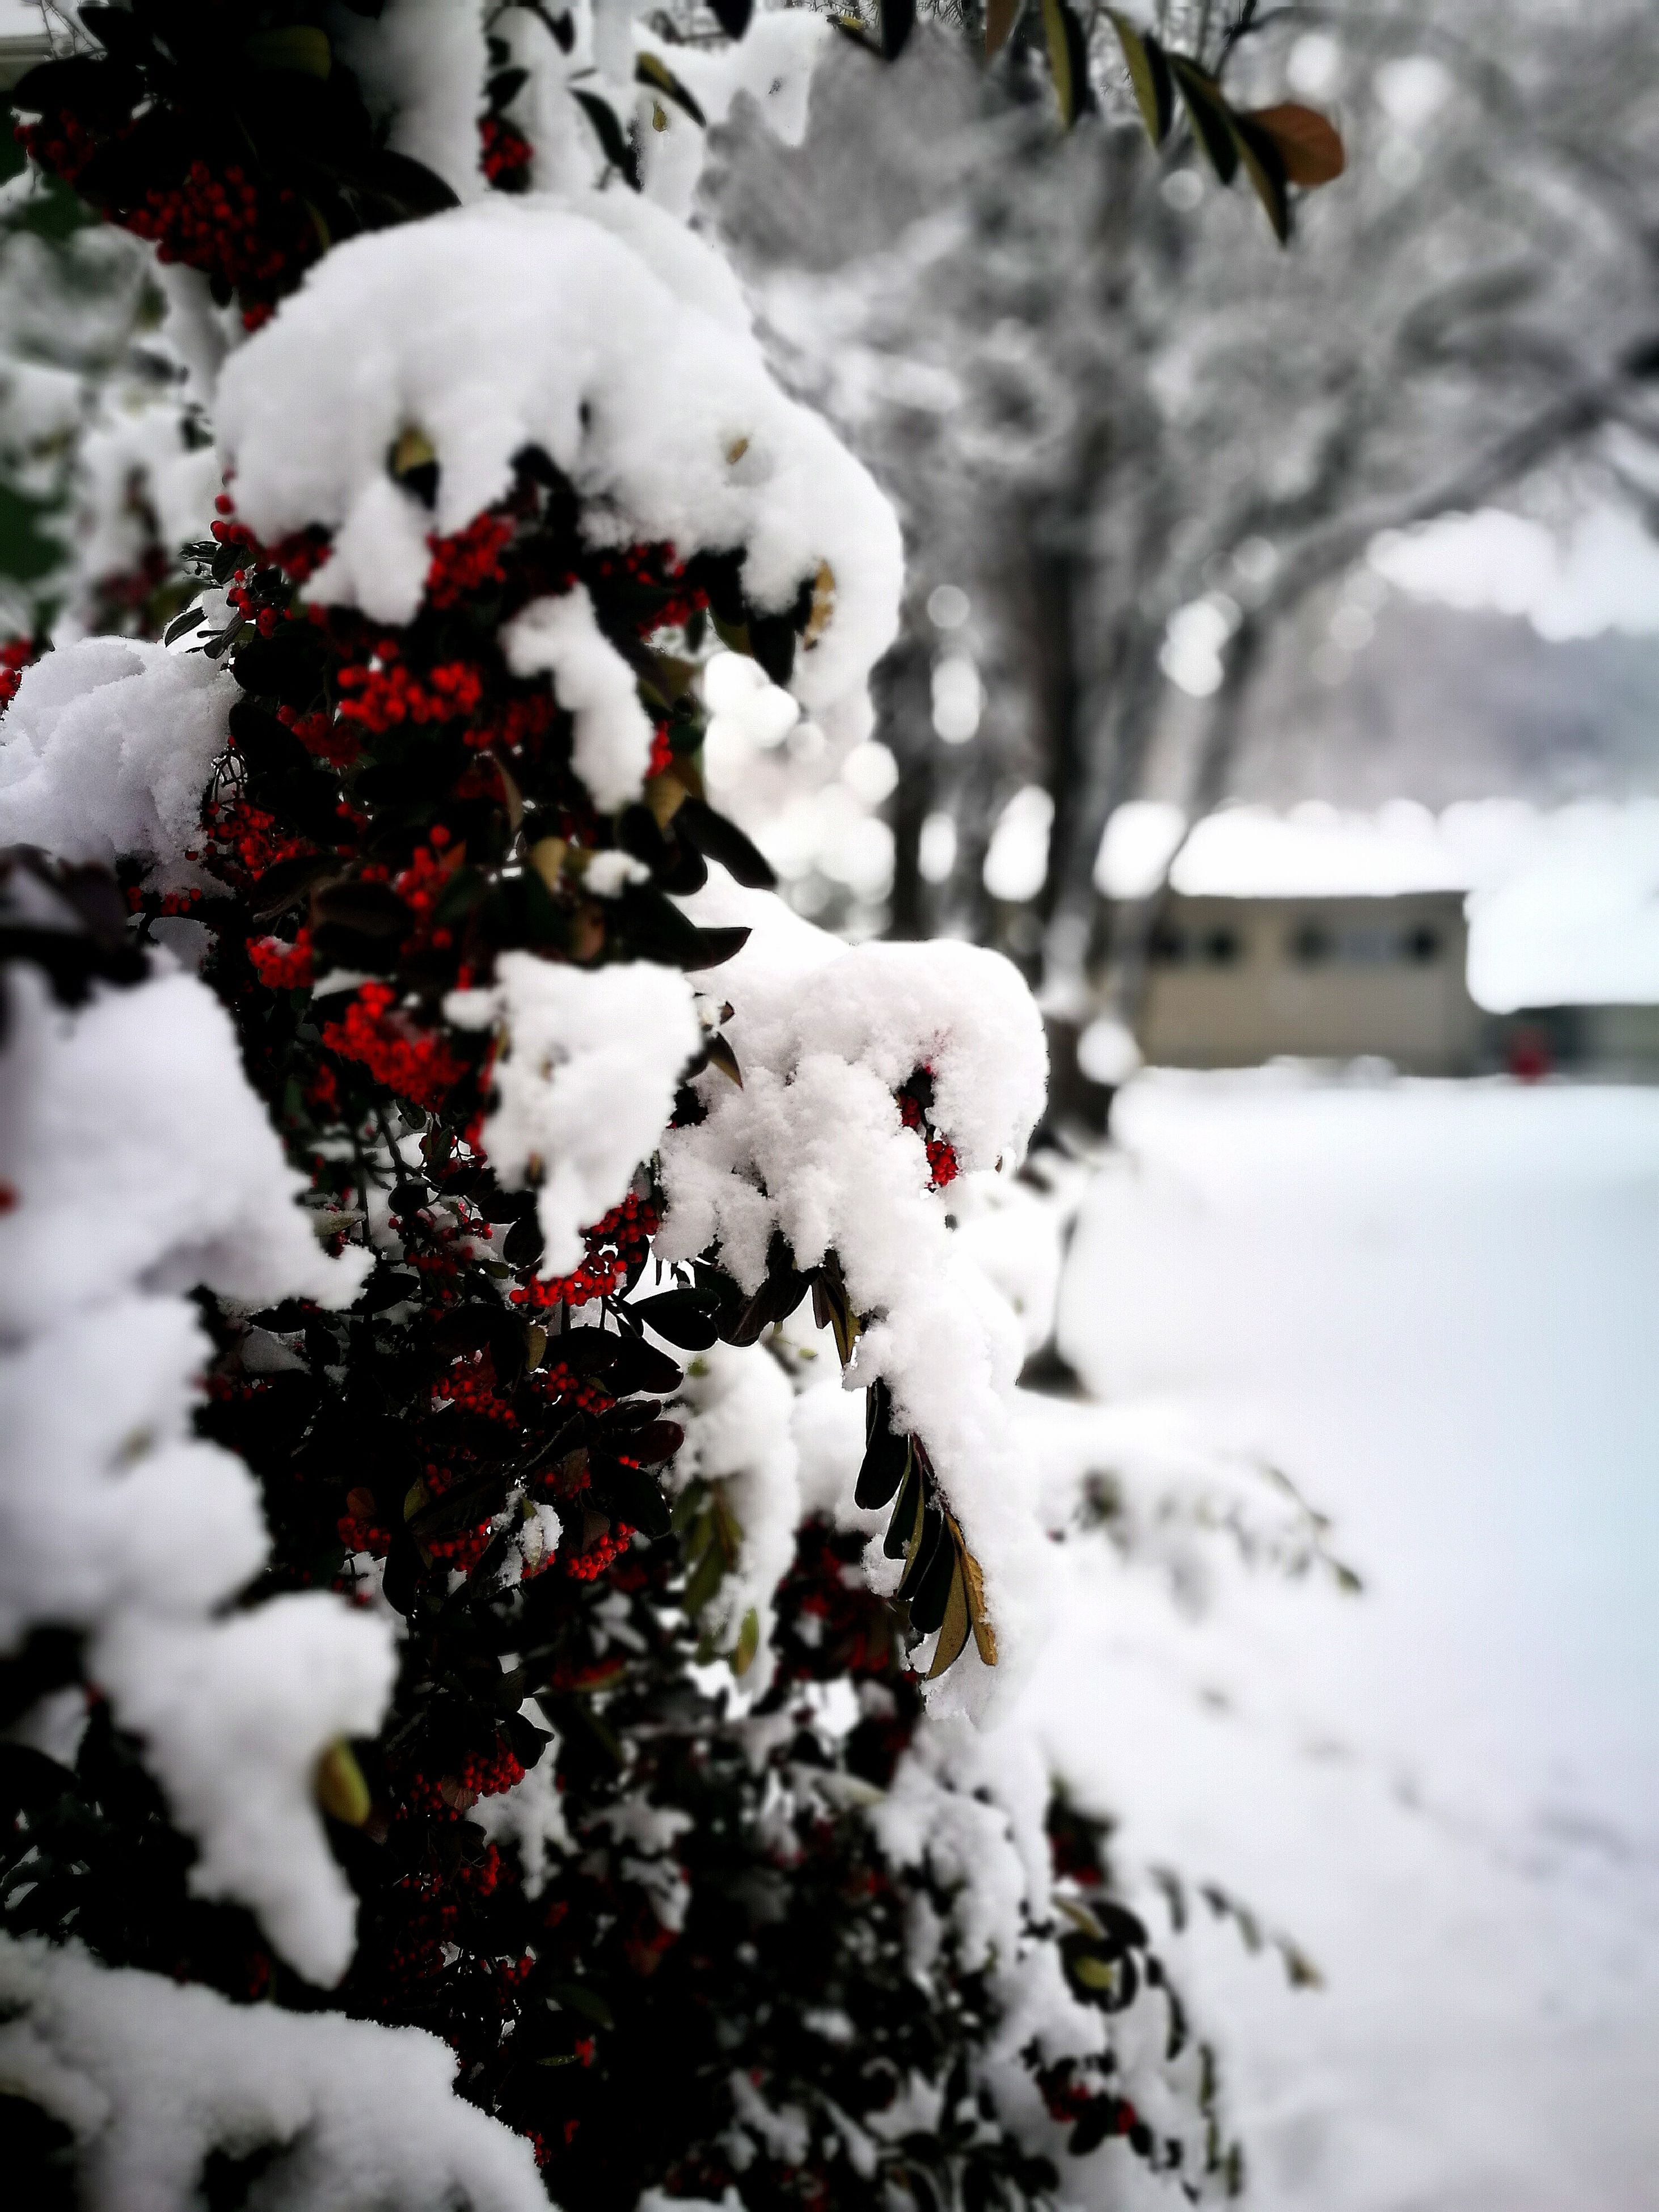 winter, snow, christmas, focus on foreground, cold temperature, tree, close-up, white color, outdoors, christmas decoration, snowman, celebration, day, christmas tree, no people, nature, christmas ornament, christmas market